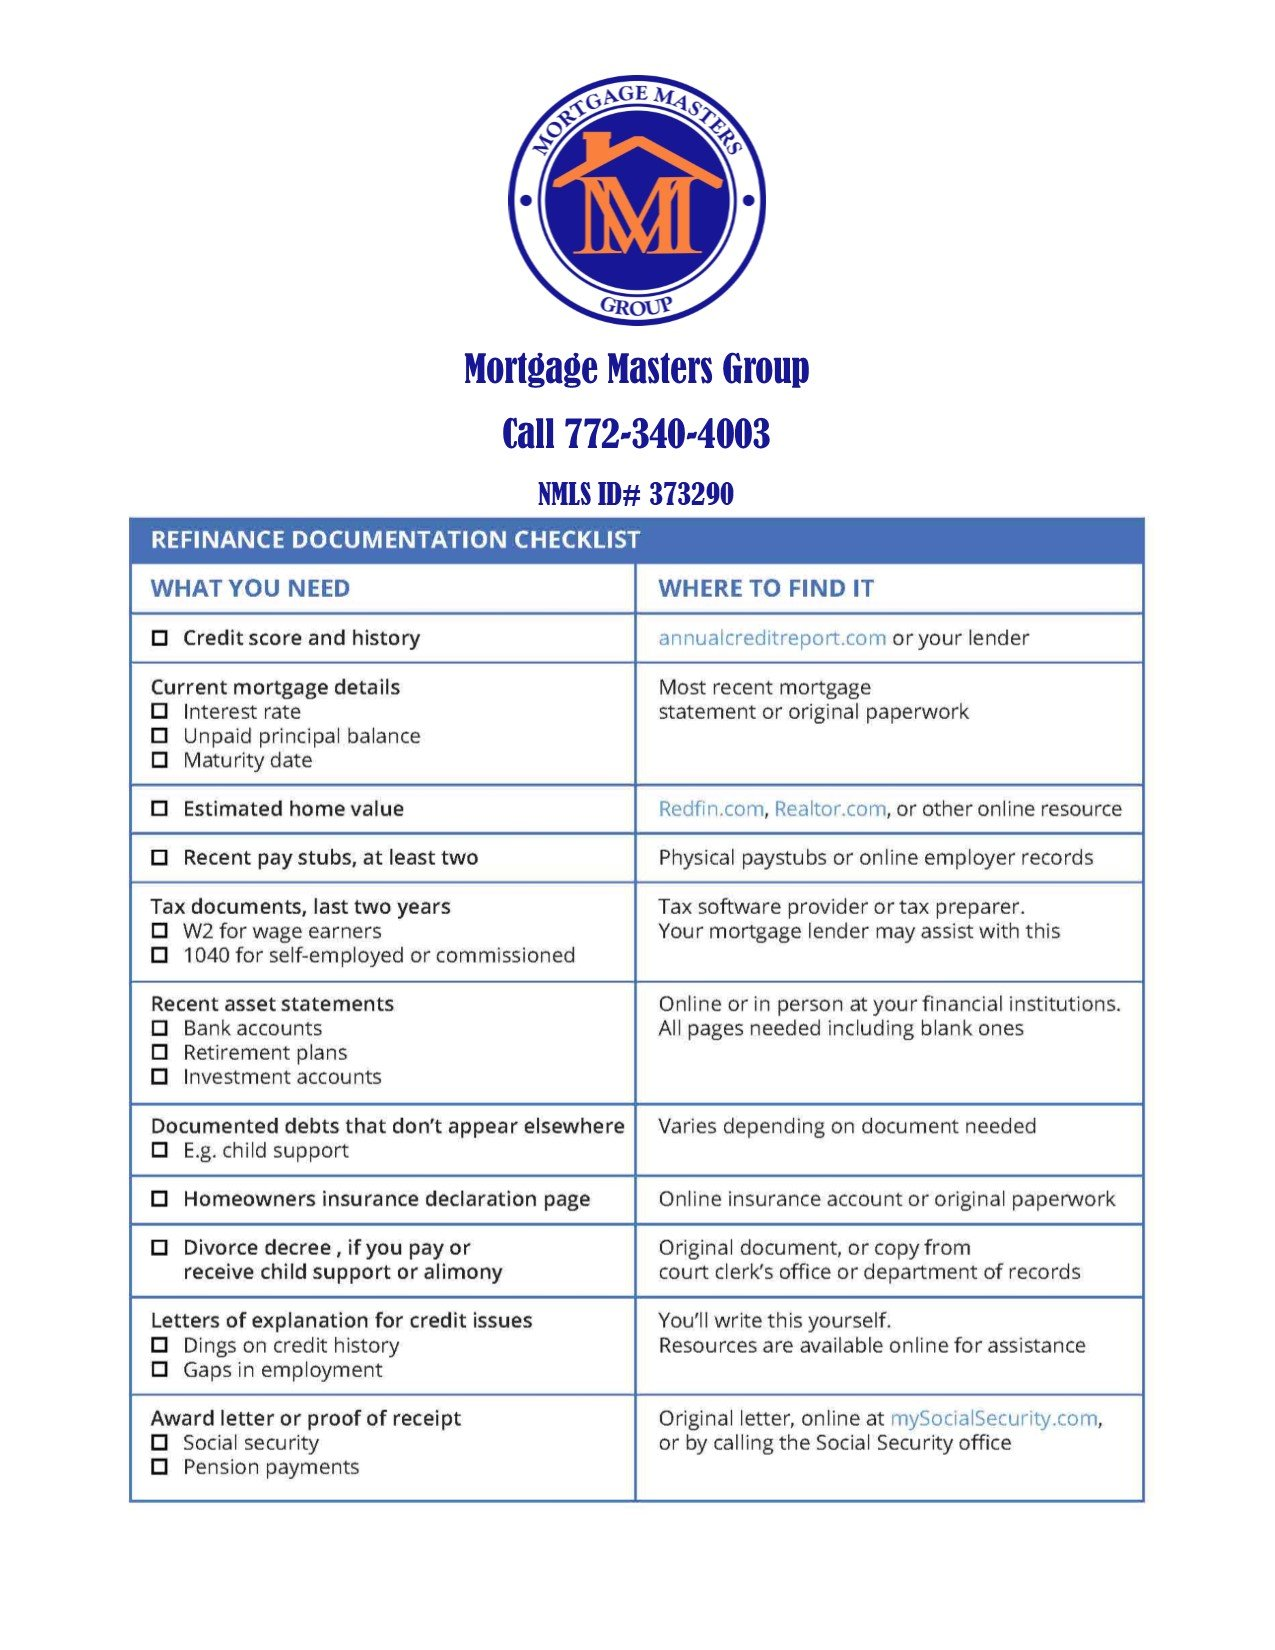 Graphic of Mortgage Masters Group checklist for documentation required at mortgage application